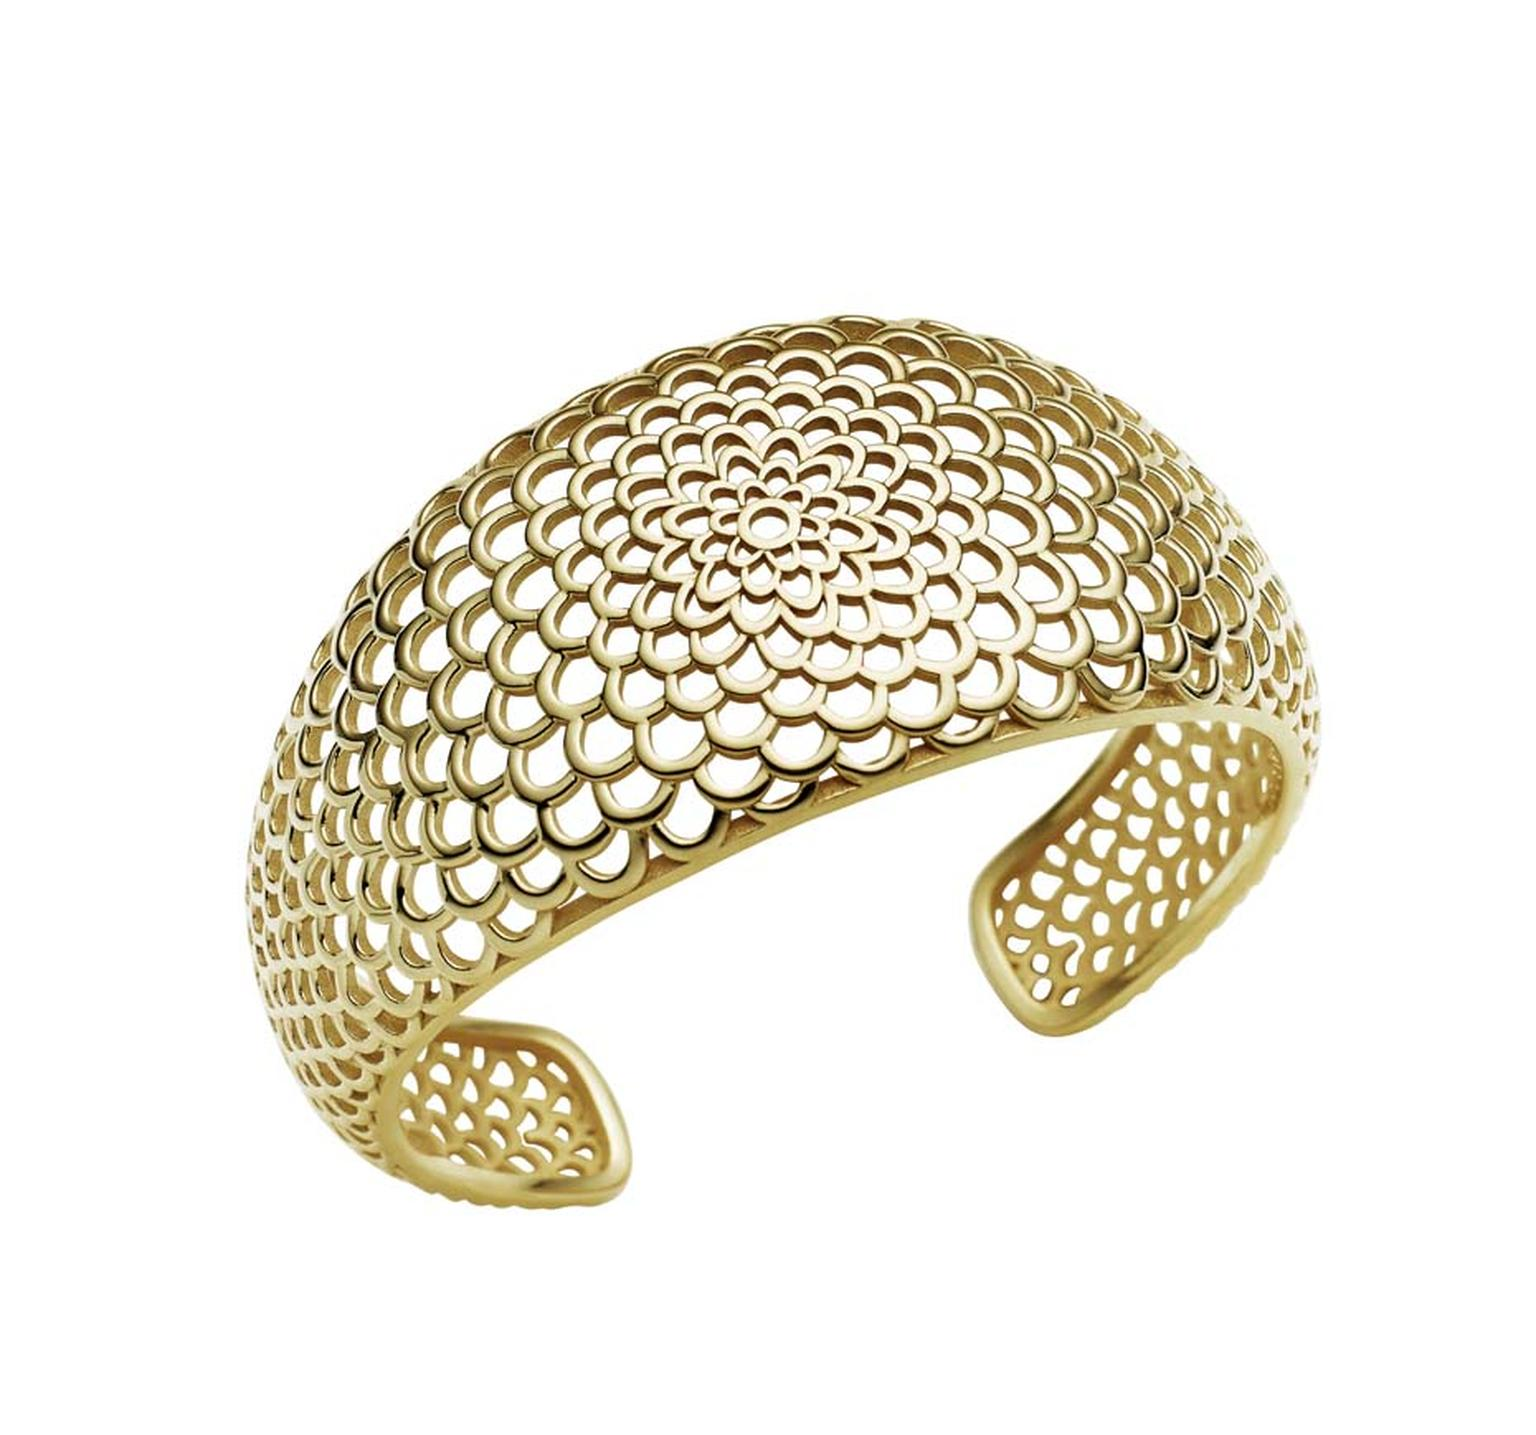 Jan Logan gold Gaudi cuff ($2,250 AUD).